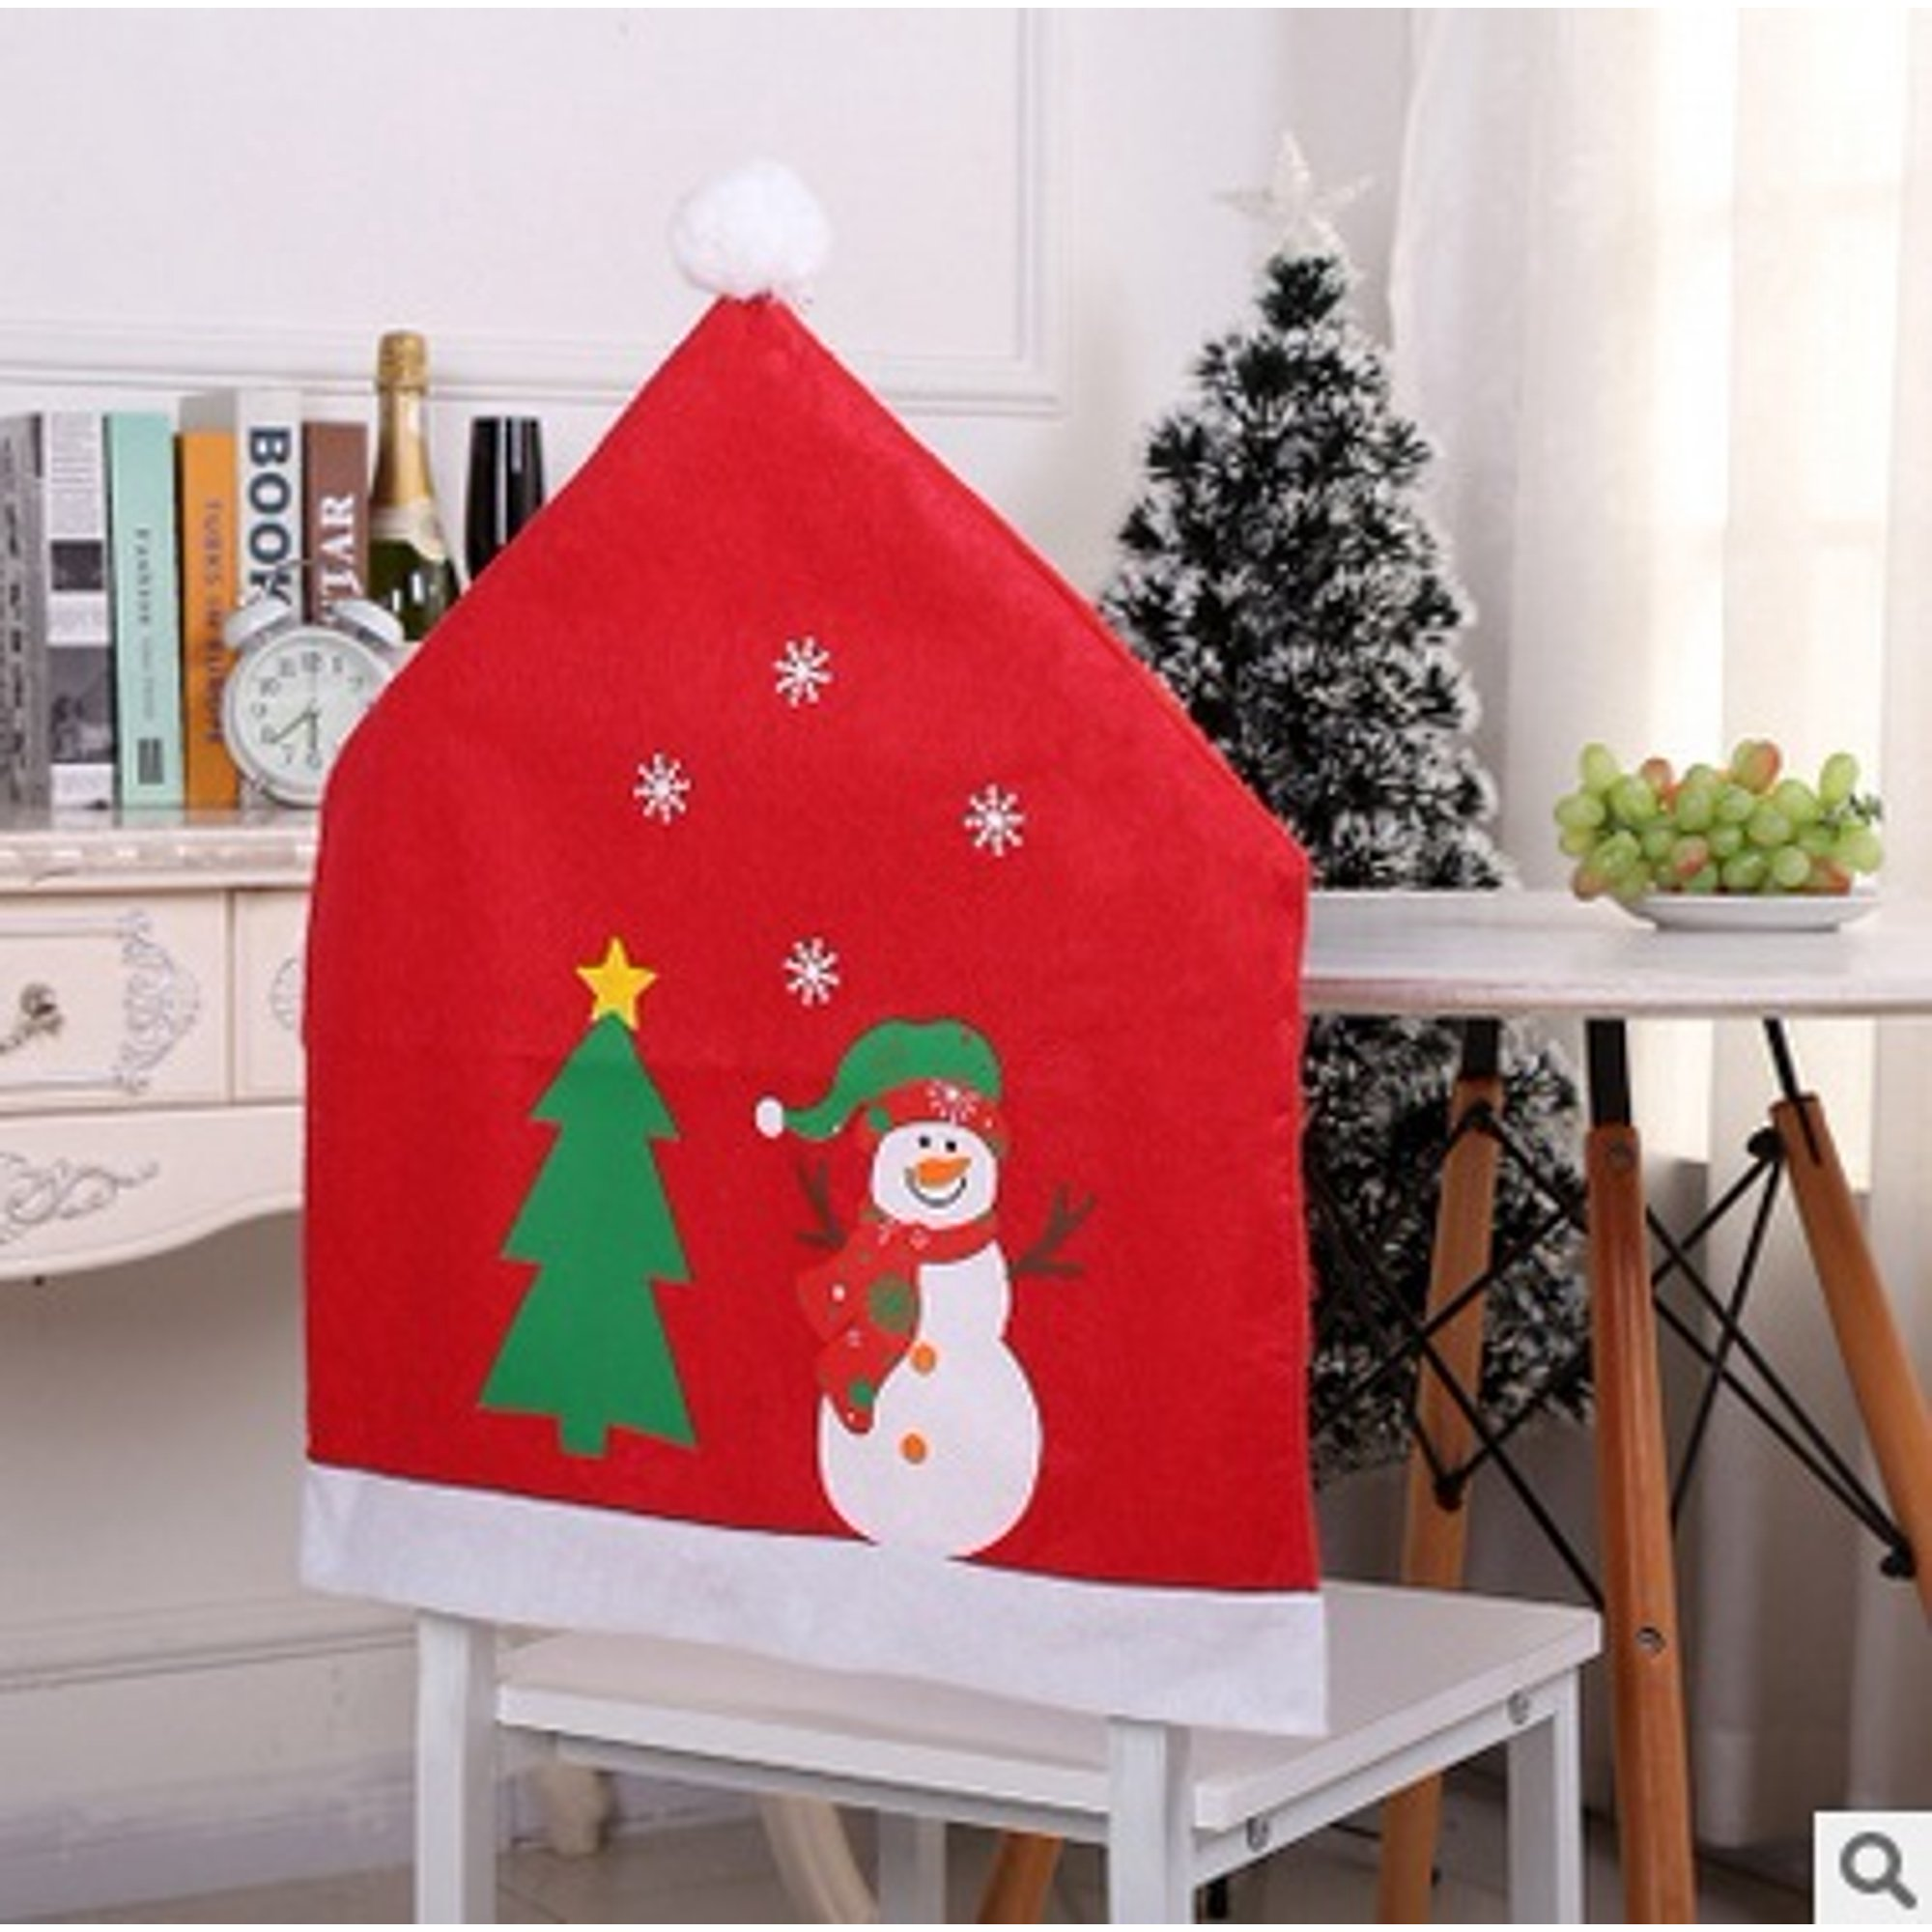 Christmas Chair Covers Decor Kitchen Chair SlipCovers Santa Claus for Holiday Party Festival Halloween Dining Room Chairs